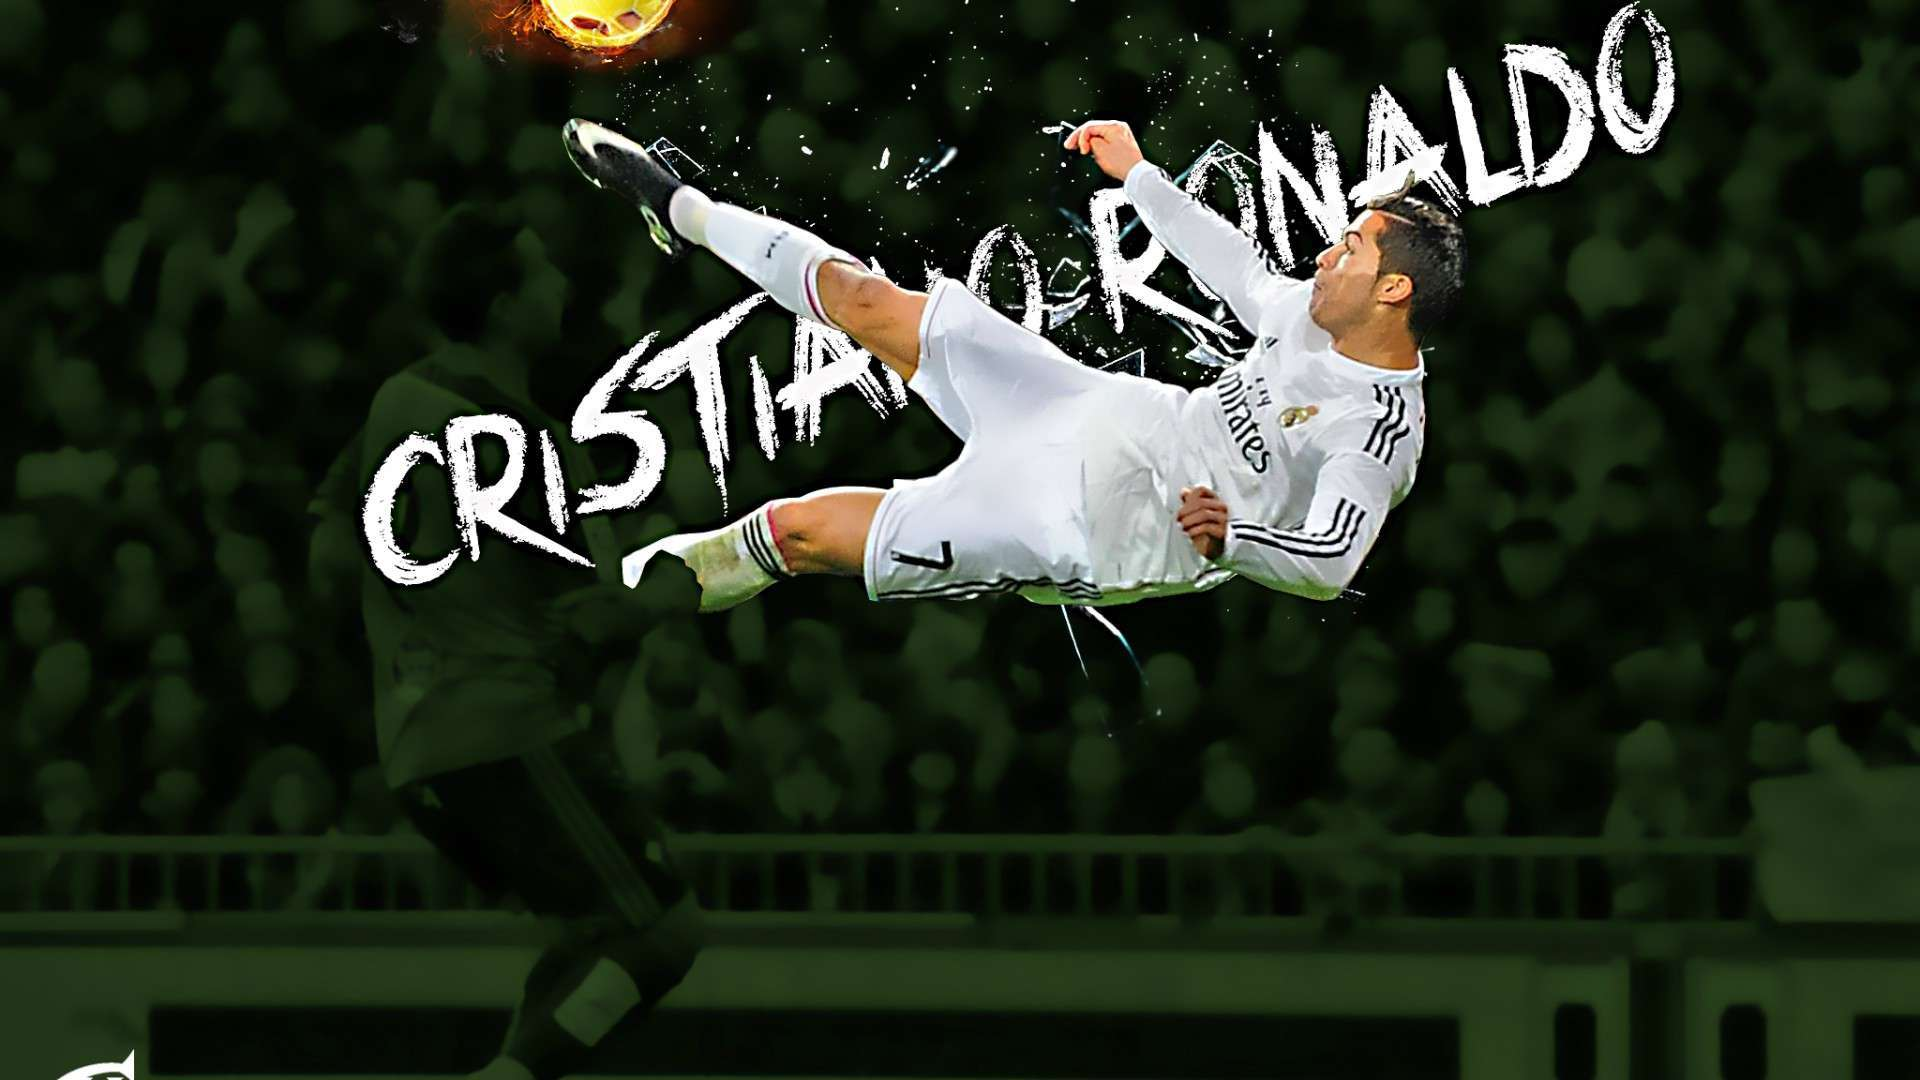 Cr7 Wallpaper Hd: Cristiano Ronaldo Wallpapers 2016 HD